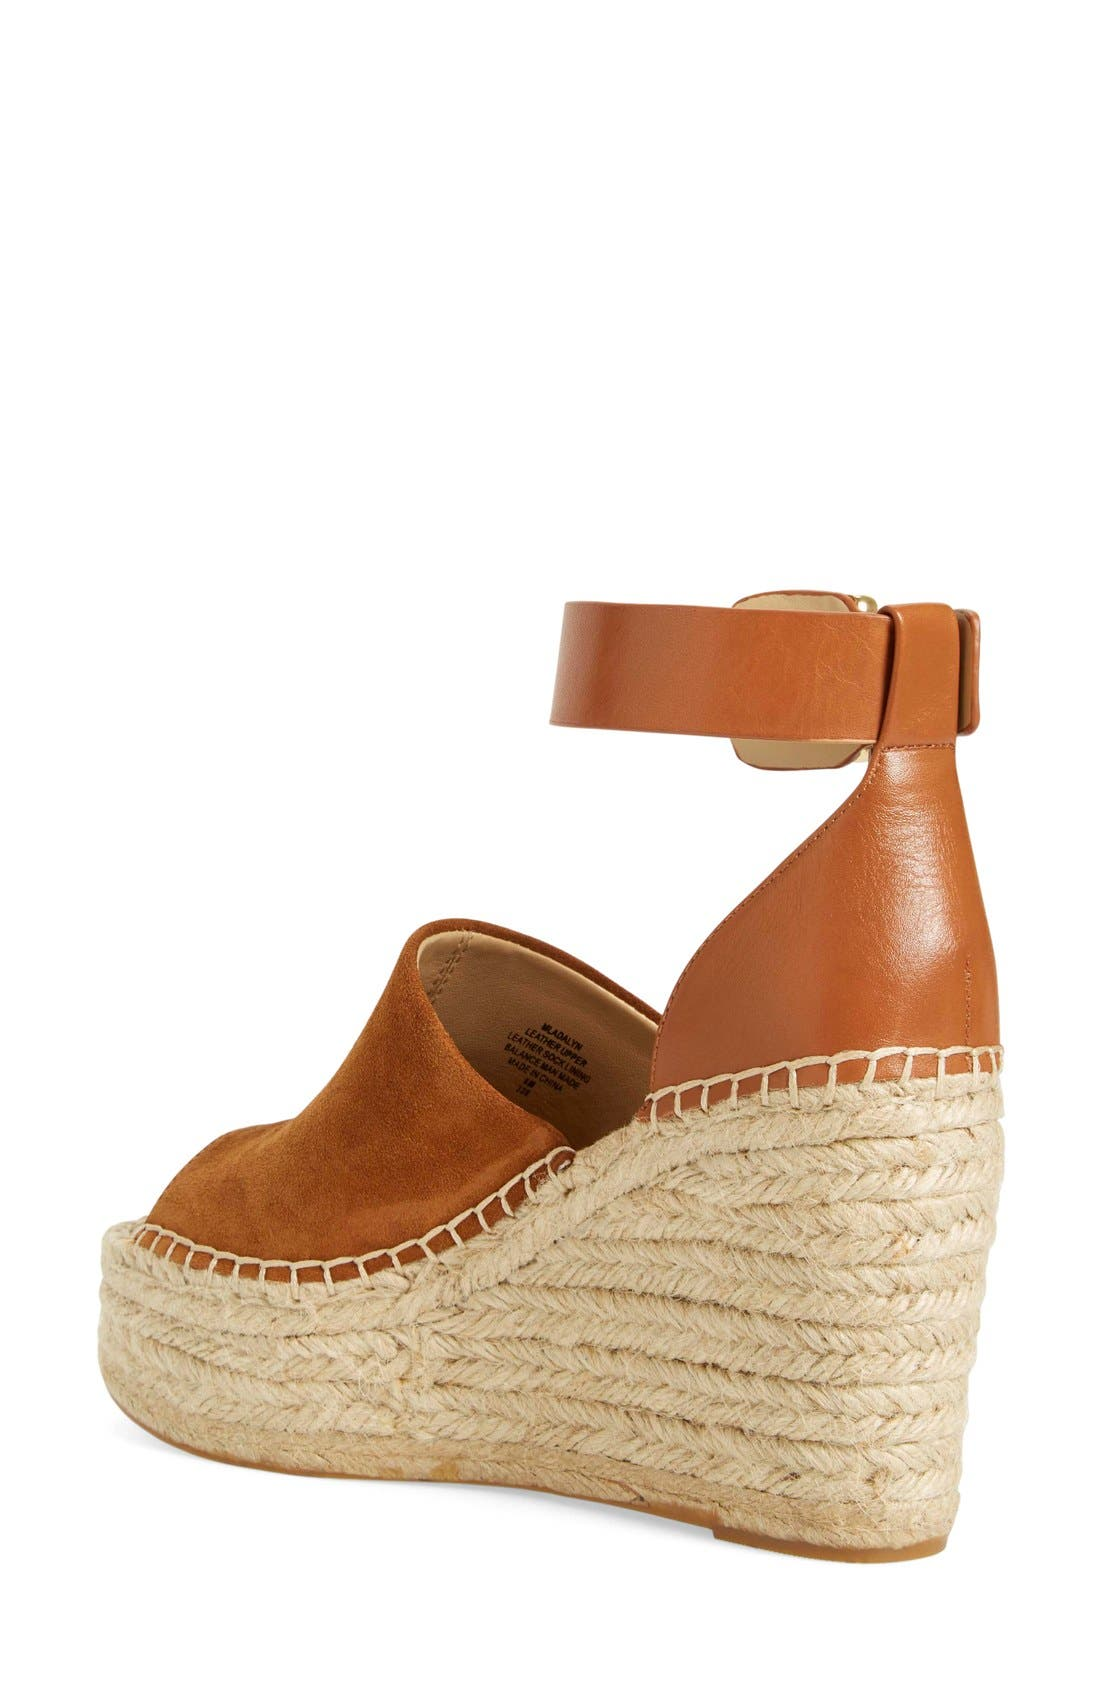 'Adalyn' Espadrille Wedge Sandal,                             Alternate thumbnail 2, color,                             Tan/ Saddle